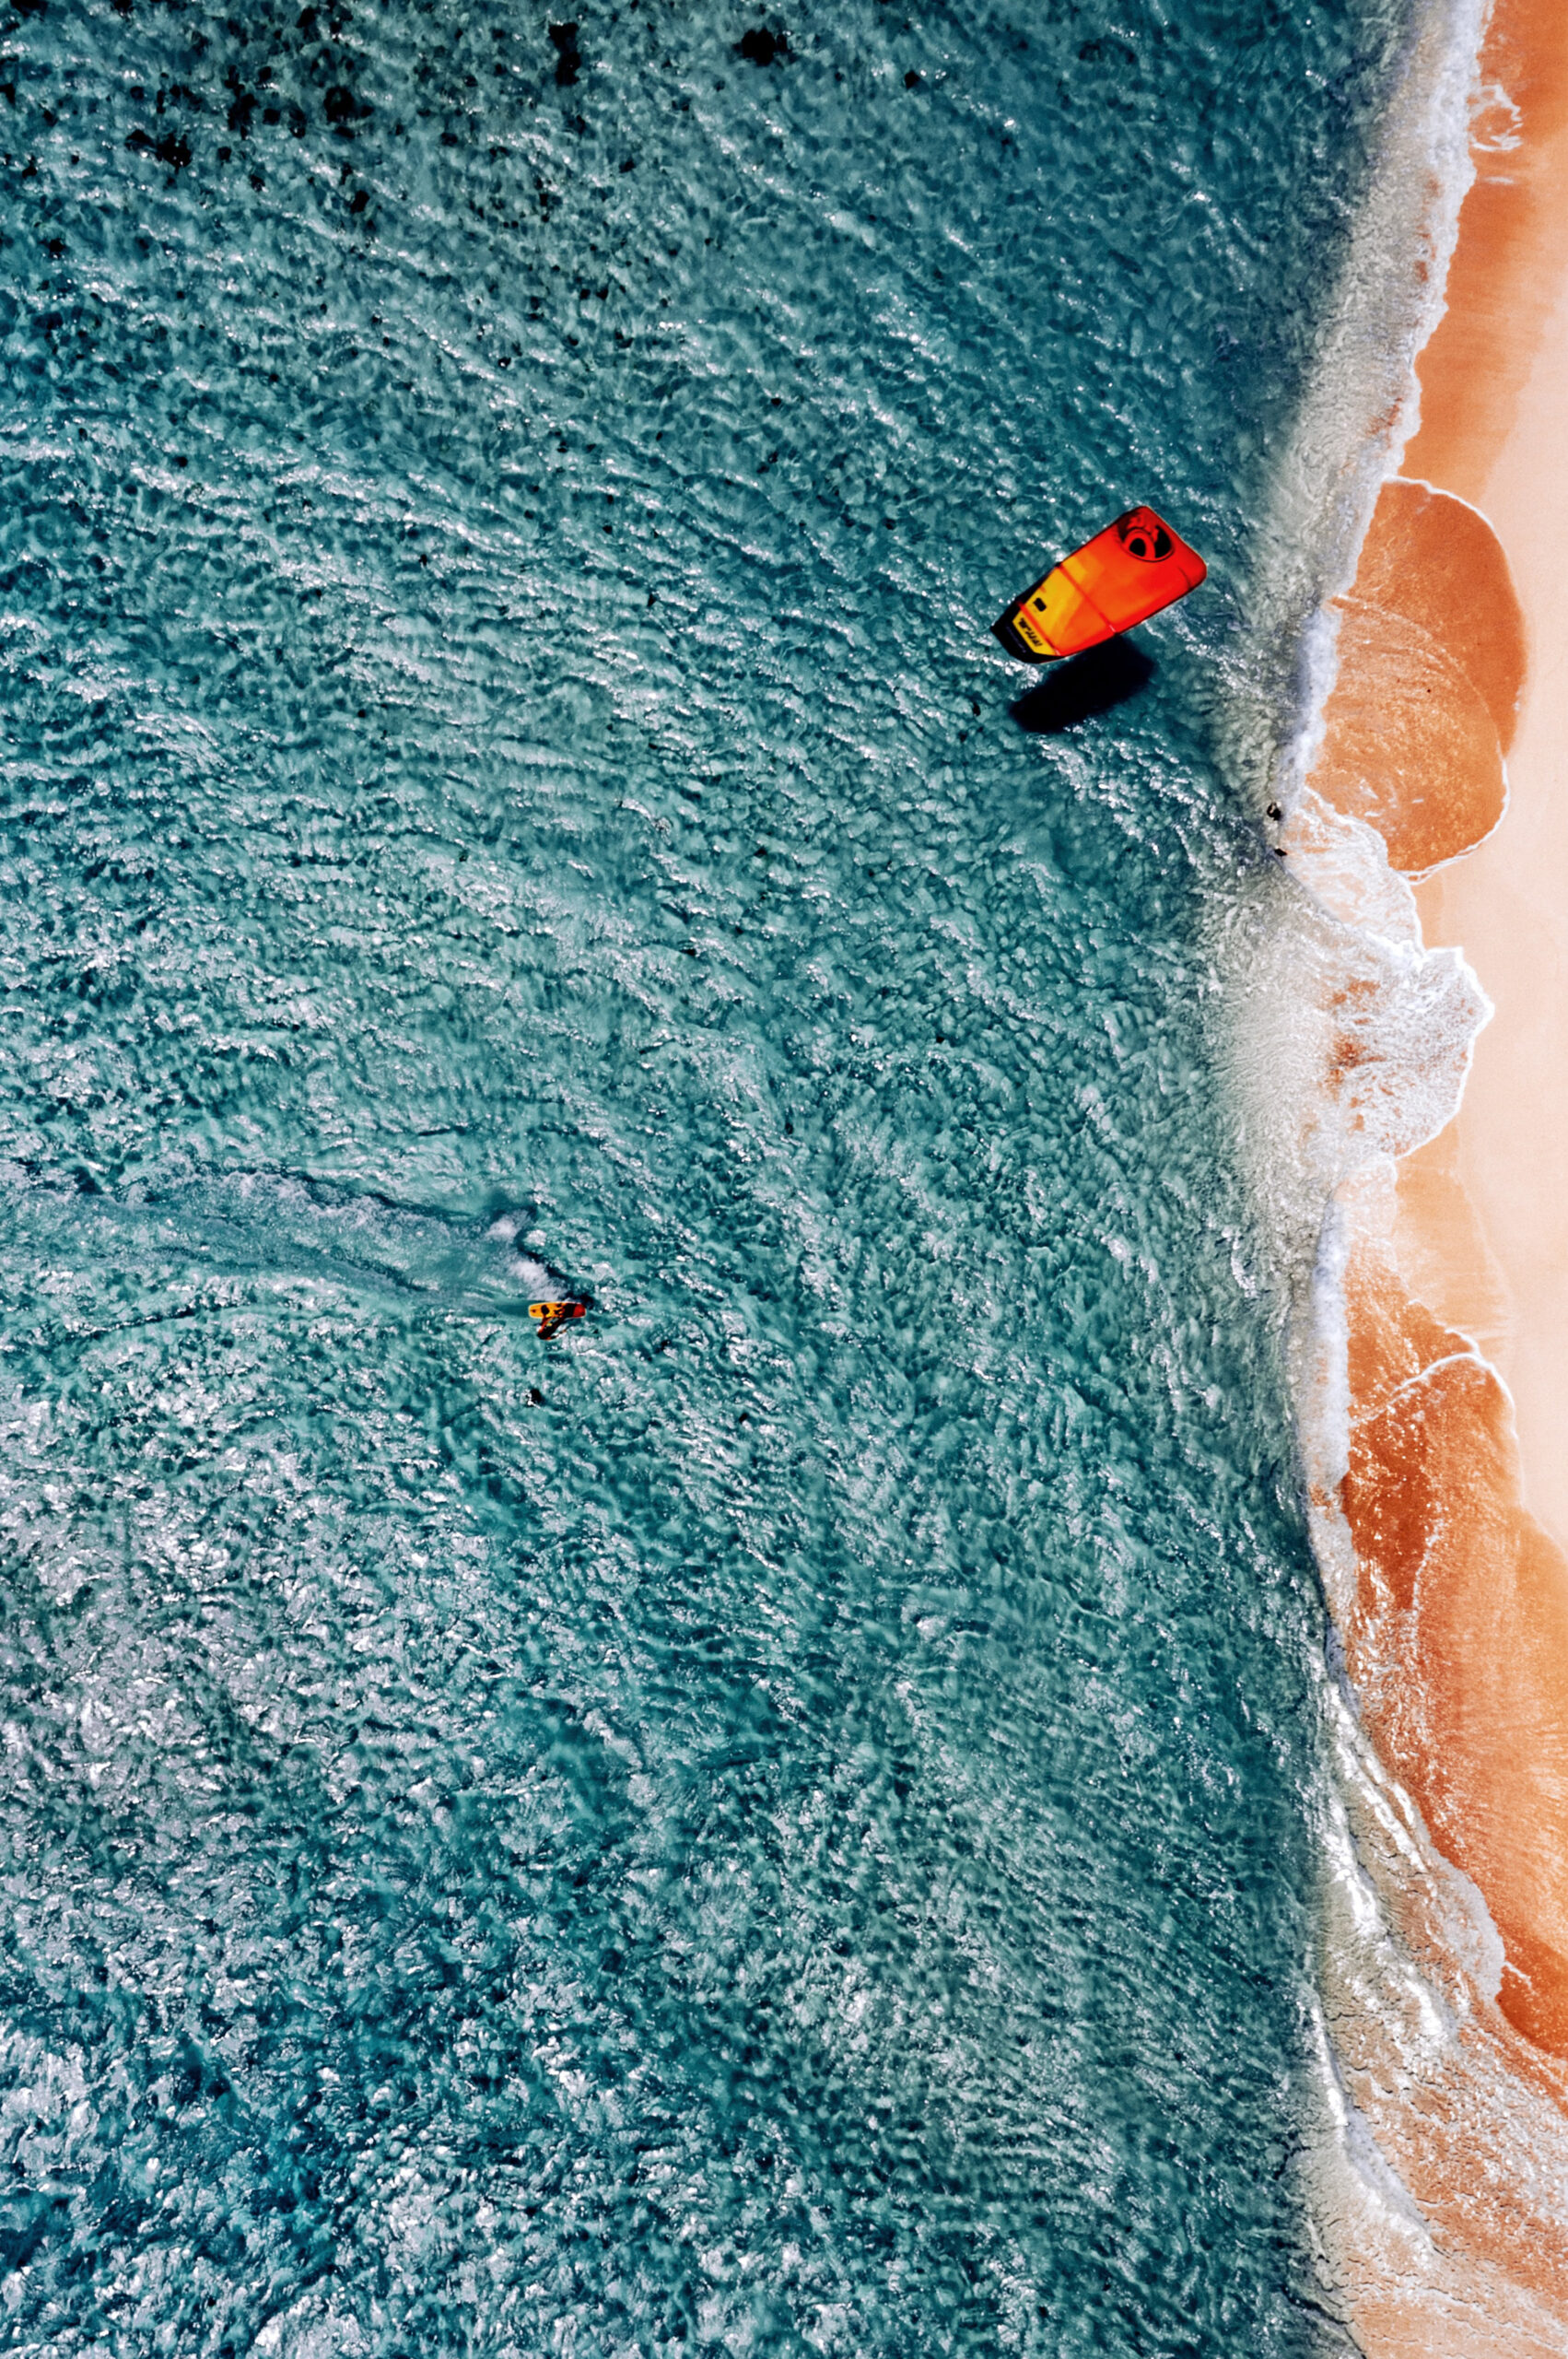 Kitesurfing moment, view from above.